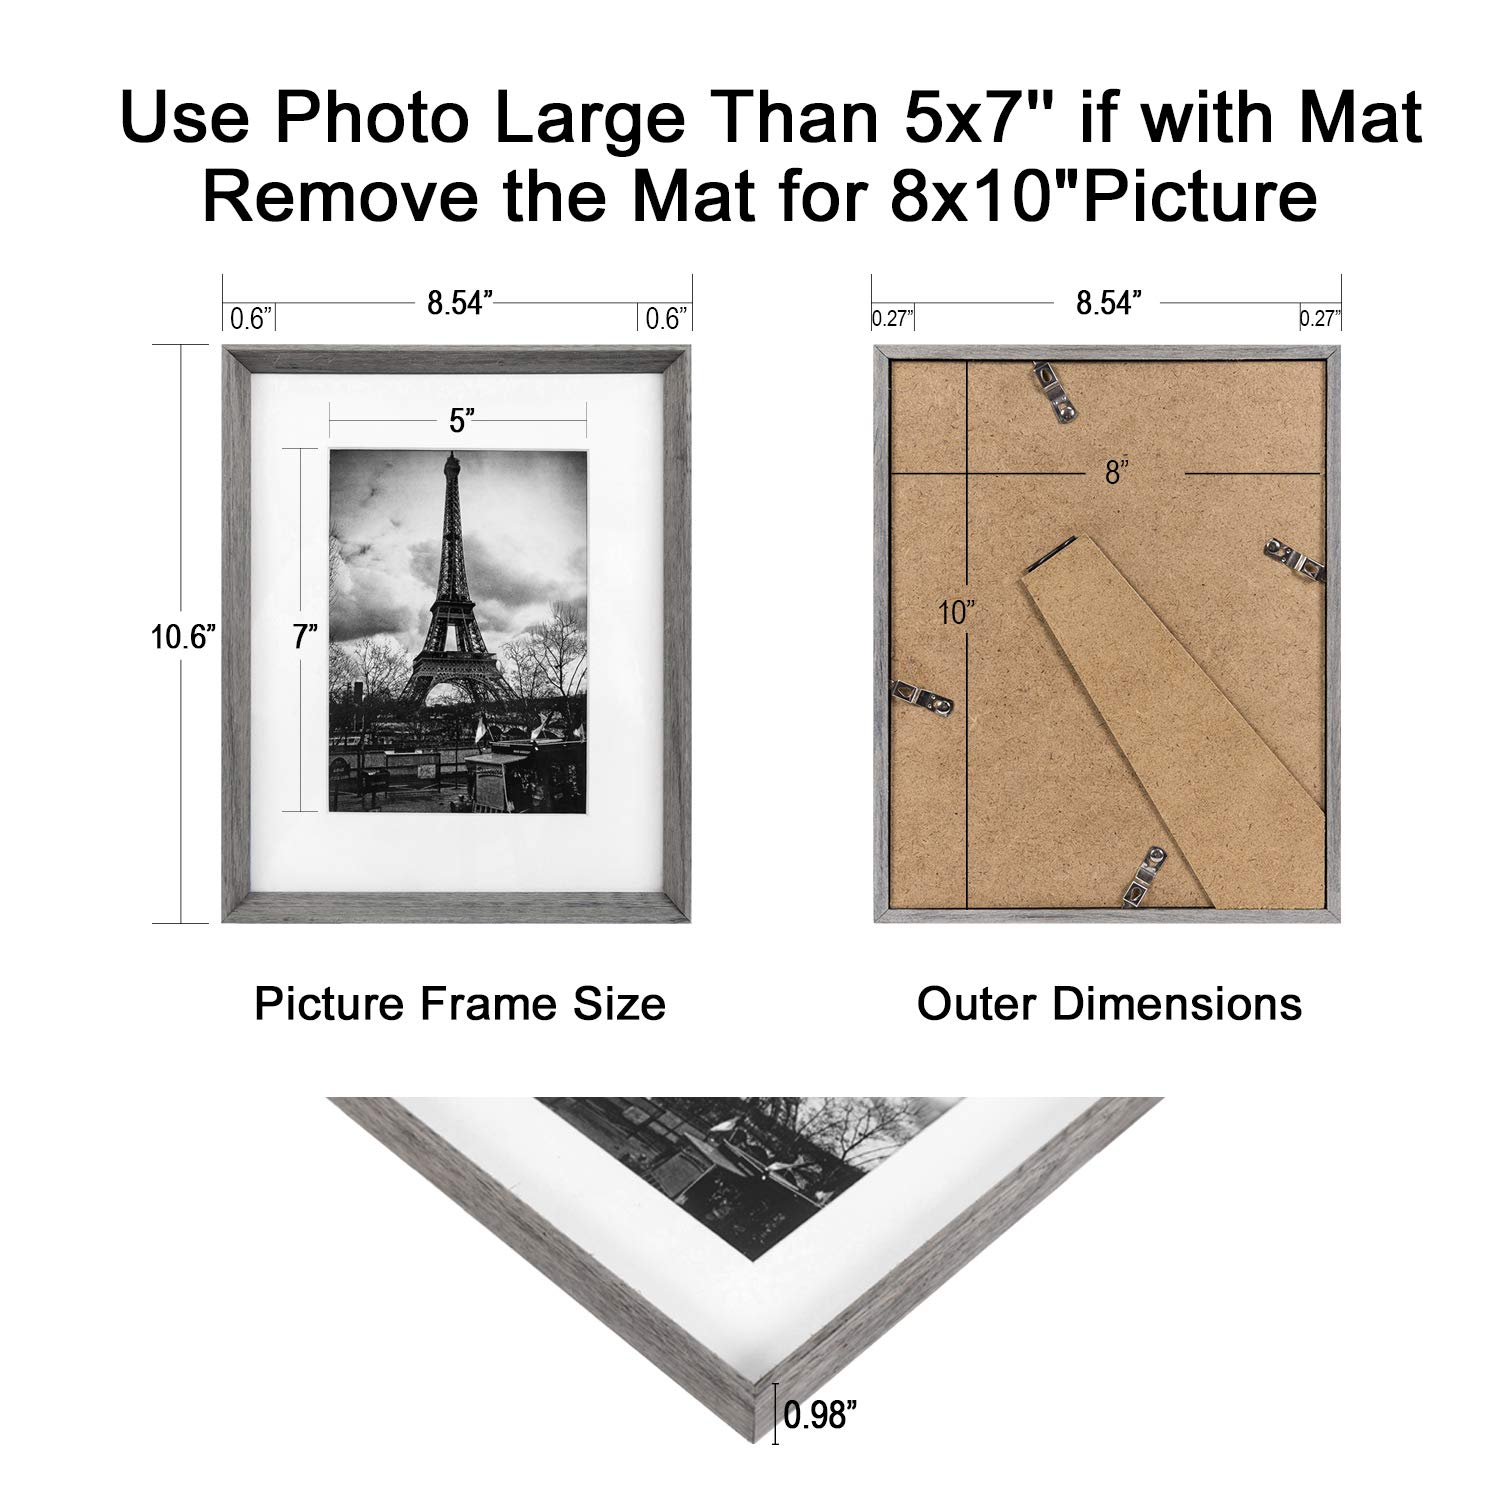 upsimples 8x10 Picture Frame with Real Glass and Mat,Rustic Photo Frames for Wall or Tabletop Display,Set of 5 by upsimples (Image #3)